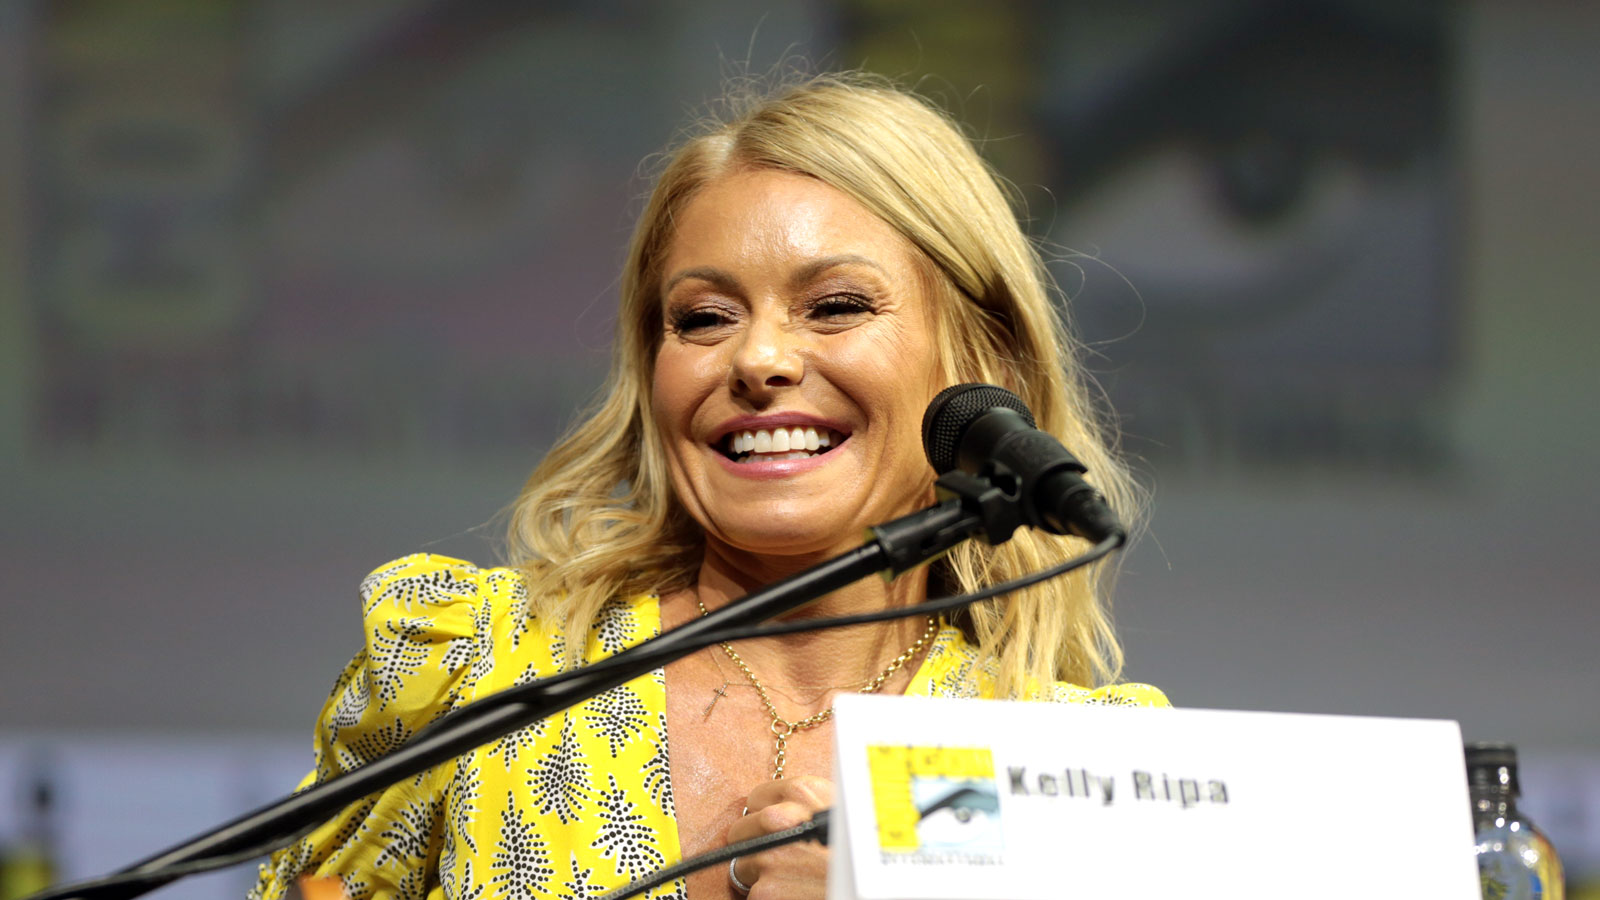 I tried Kelly Ripa's wellness routine and this is what happened